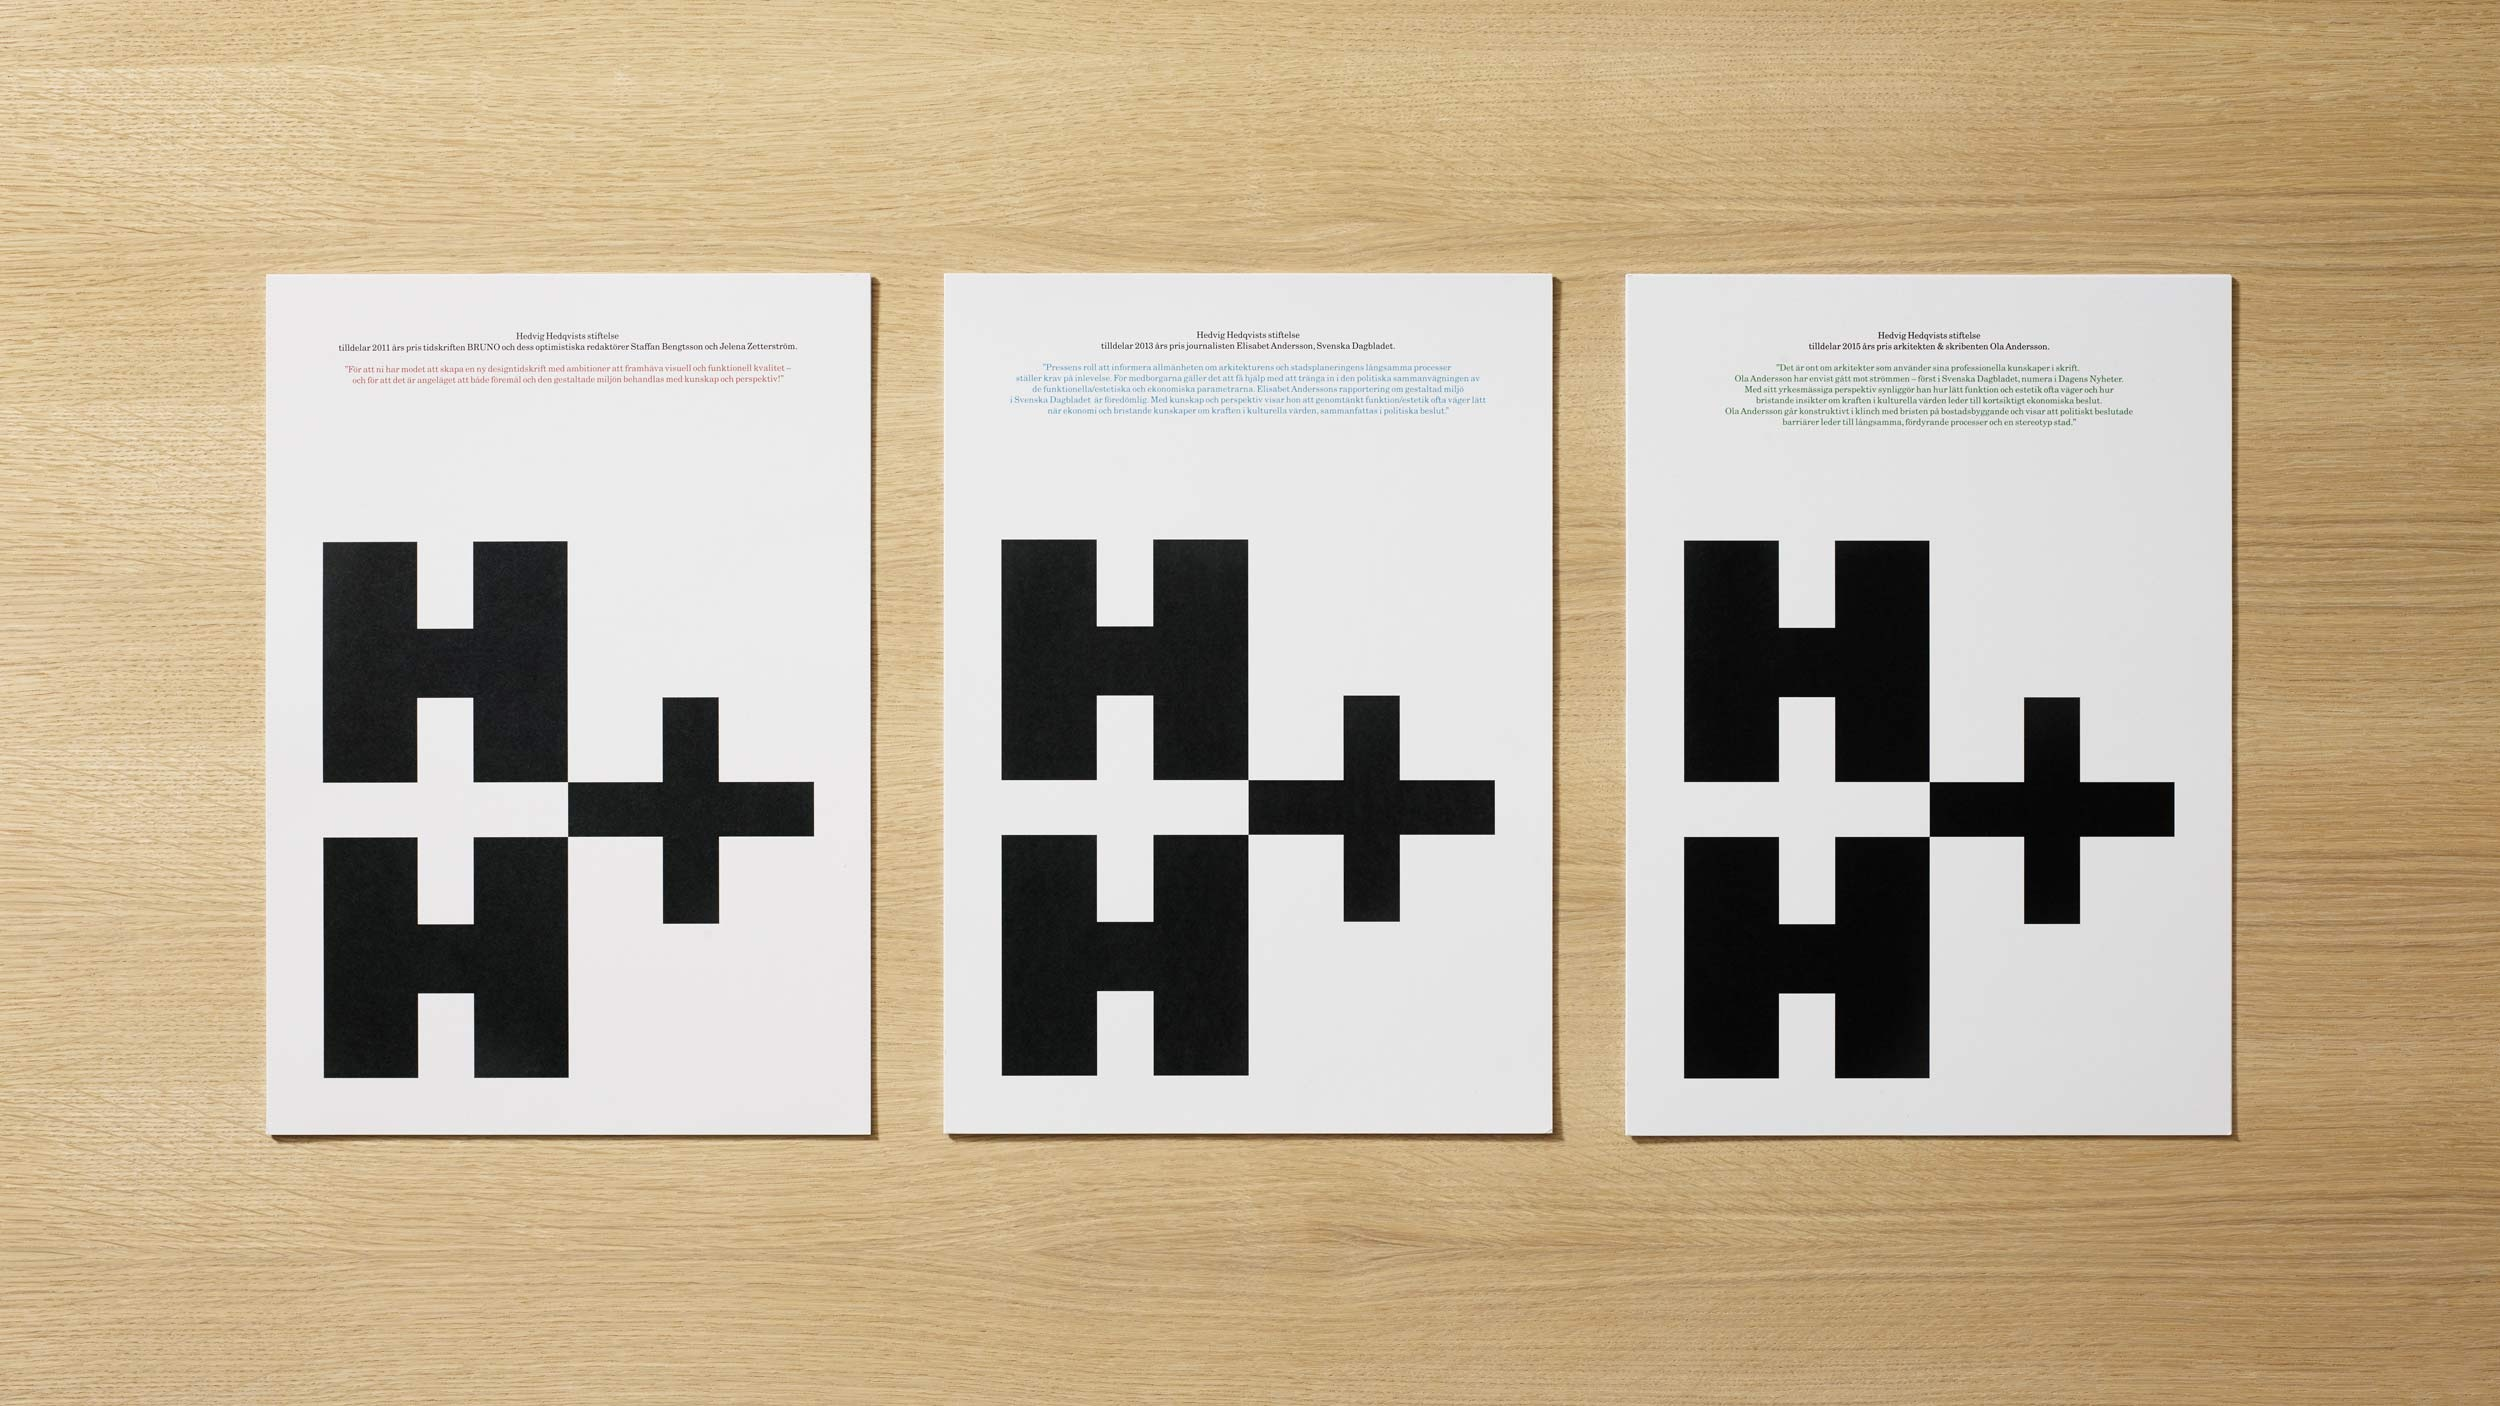 Hedvig Hedqvist Foundation – identity